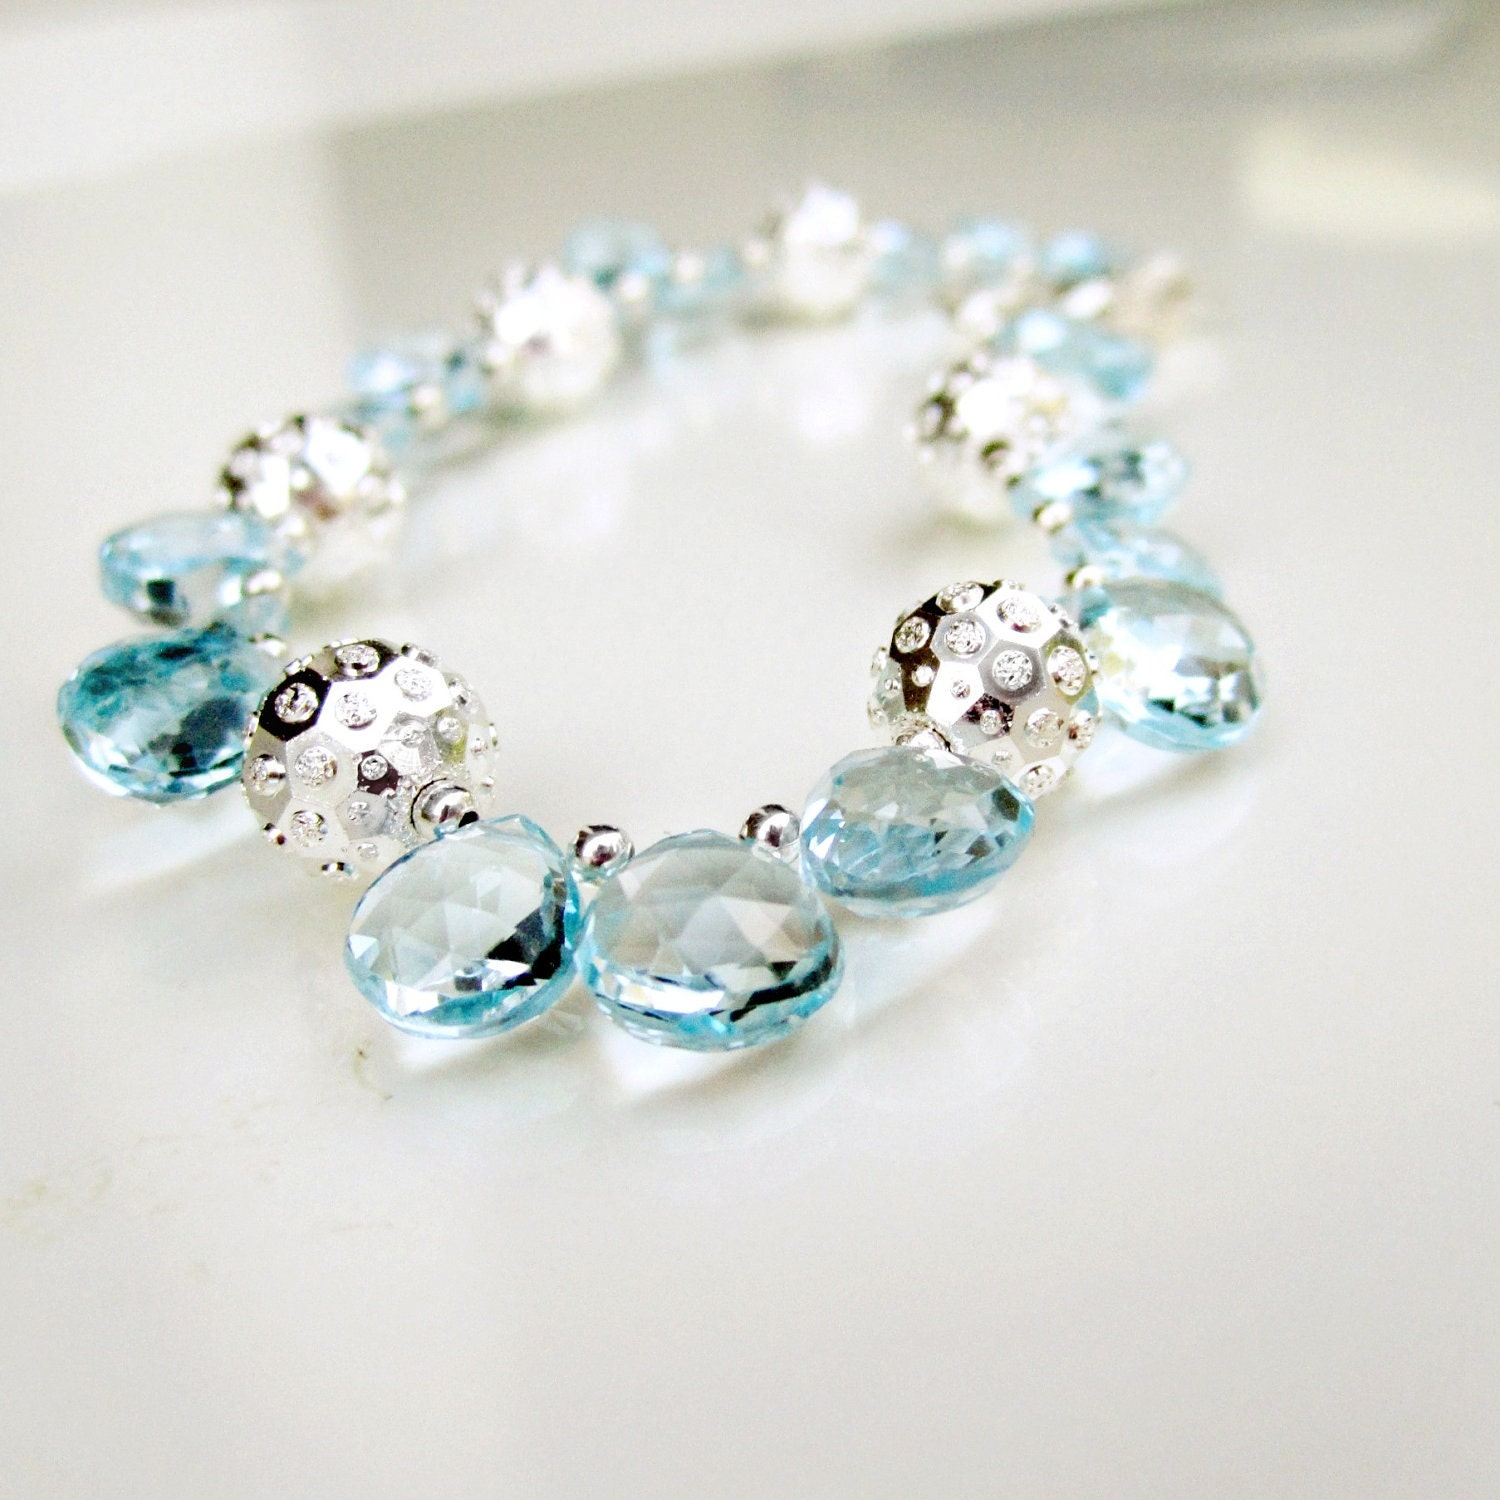 Blue Topaz Bracelet December Birthstone Jewelry Sterling